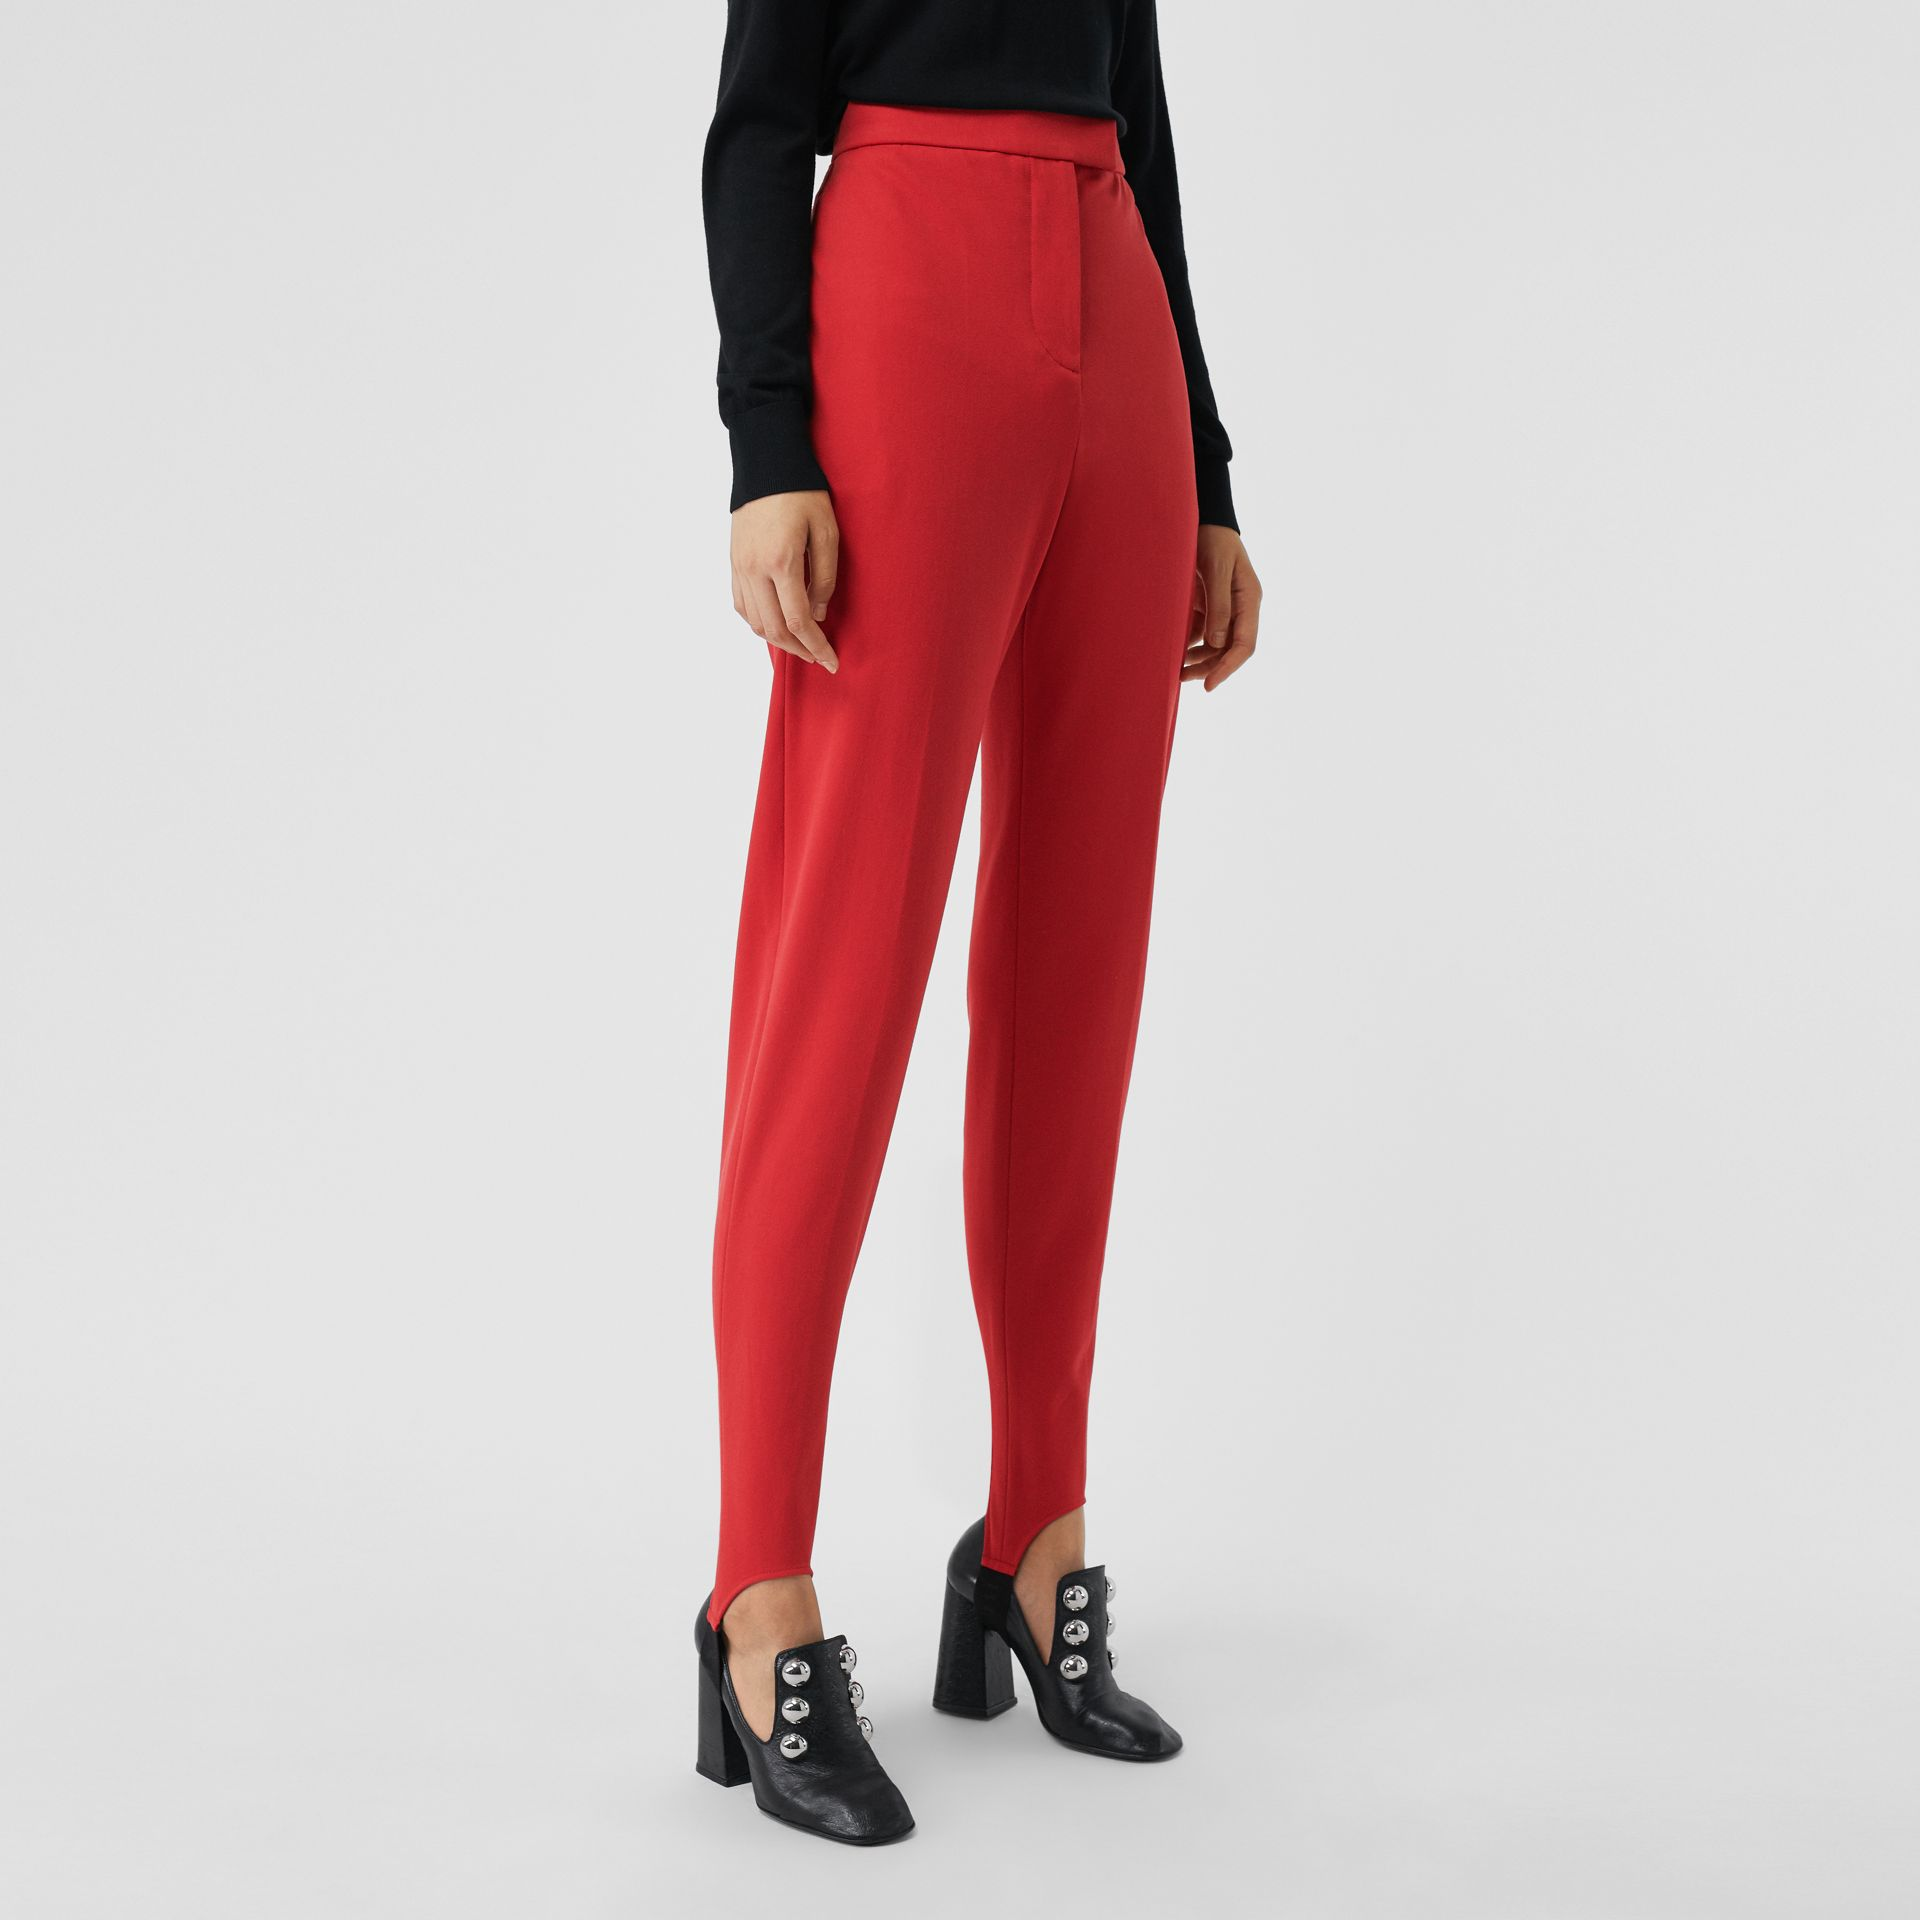 Long Cotton Blend Tailored Jodhpurs in Bright Red - Women | Burberry United Kingdom - gallery image 5